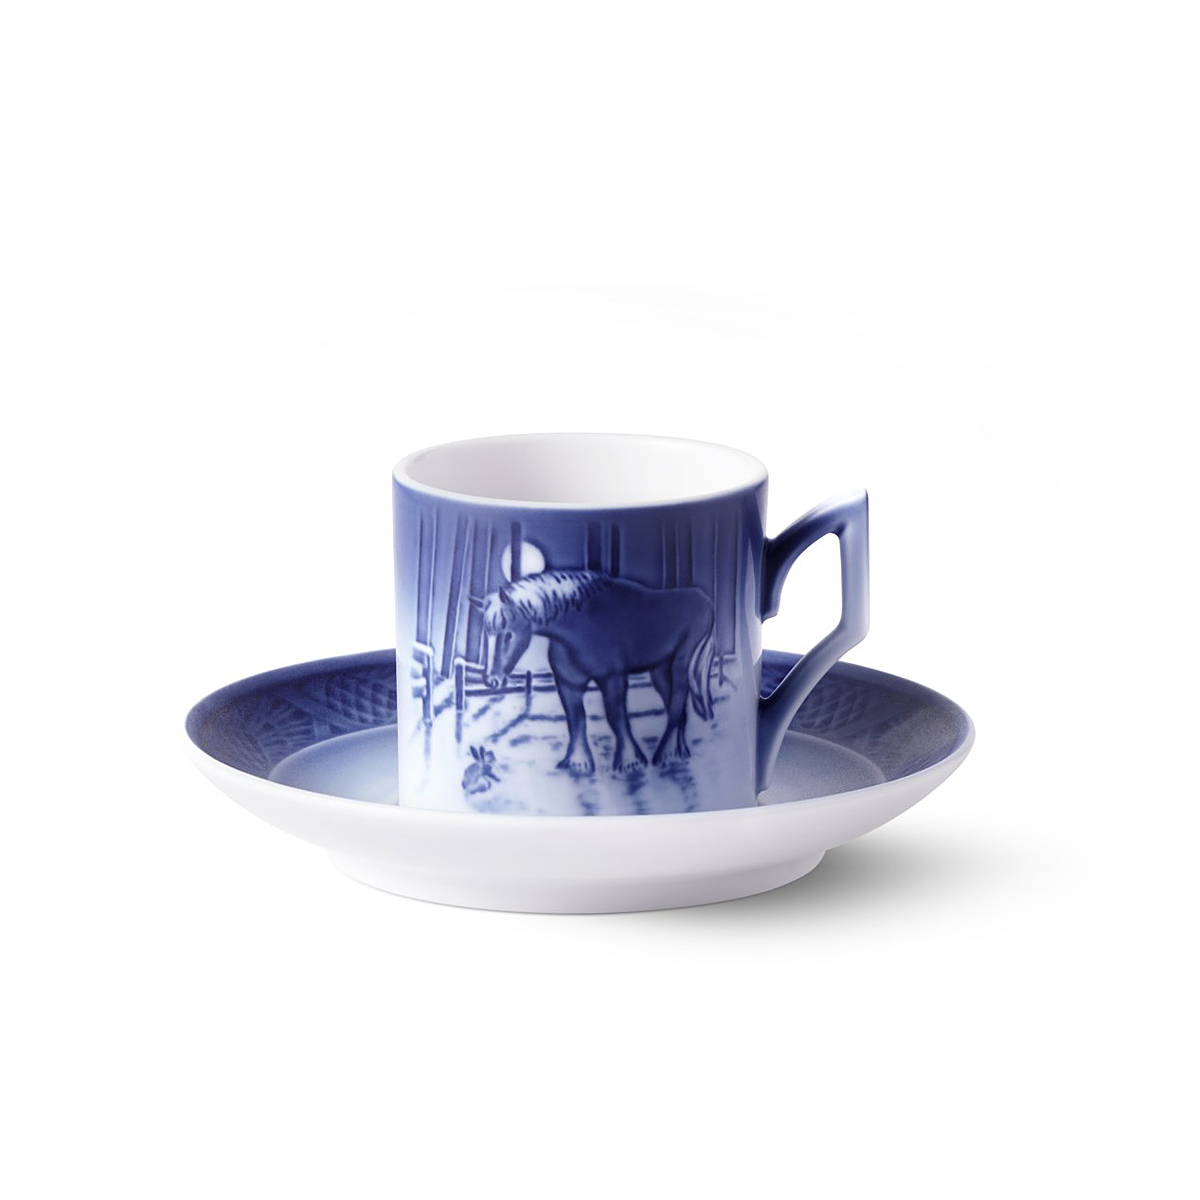 Royal Copenhagen 2019 Cup And Saucer Set